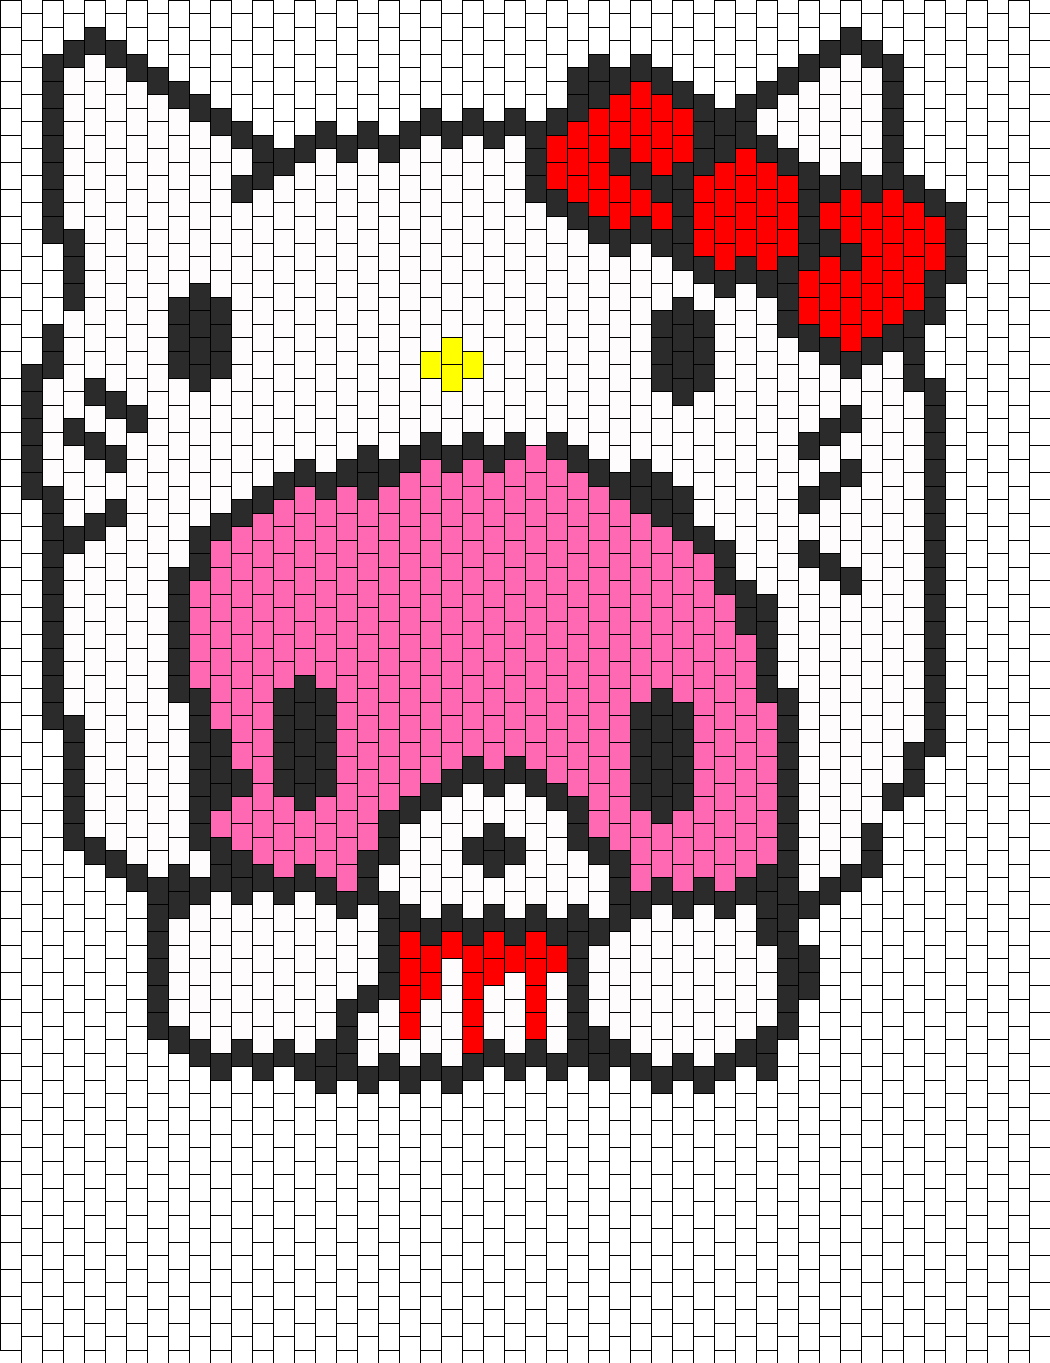 hellokitty_and_gloomybear